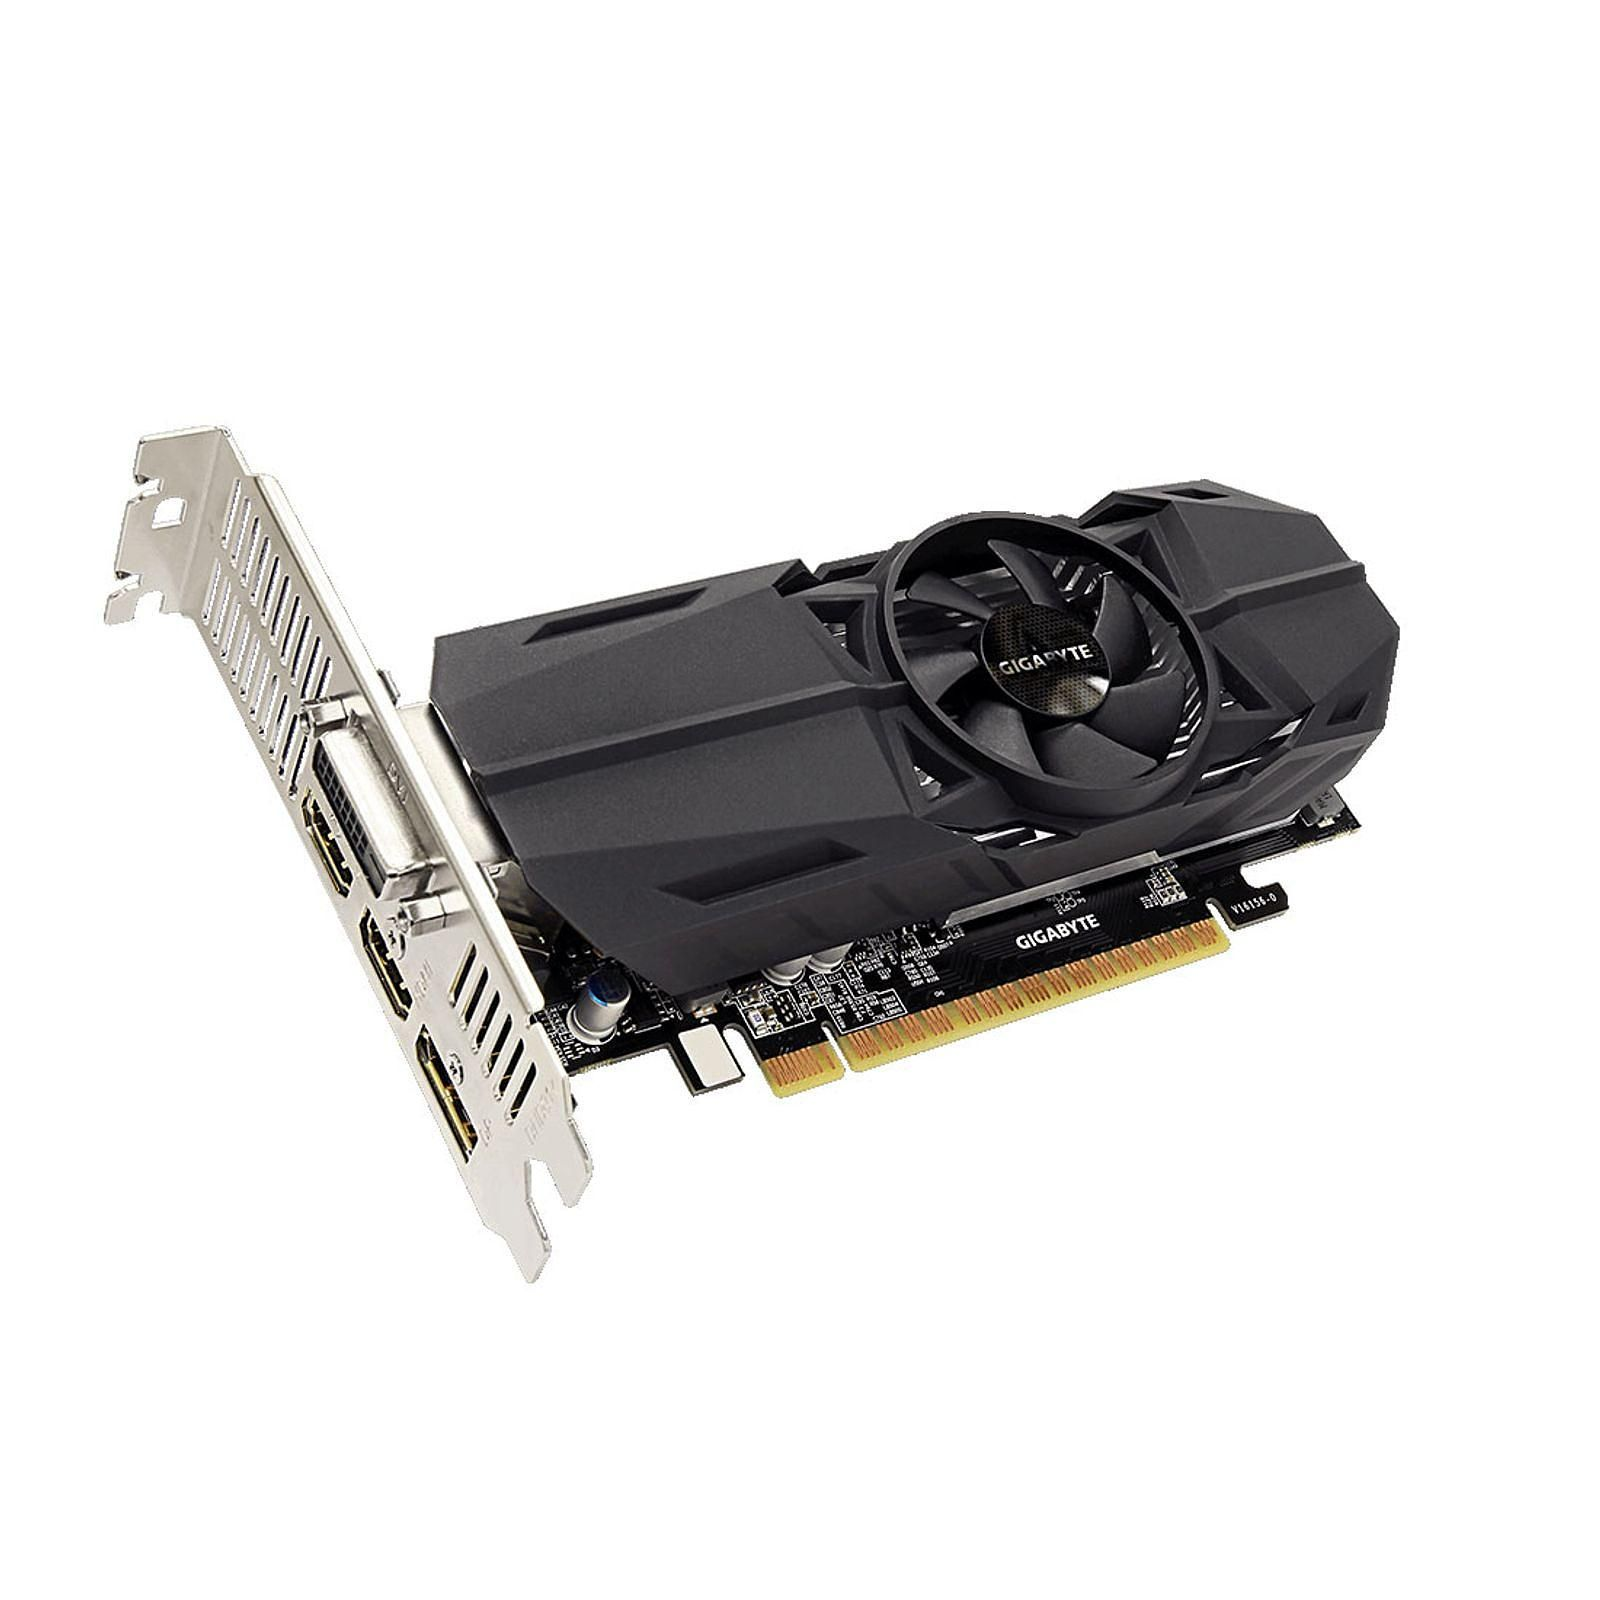 GeForce GTX 1050 Ti OC Low Profile 4G (GV-N105TOC-4GL) - Achat / Vente Carte graphique sur Picata.fr - 2